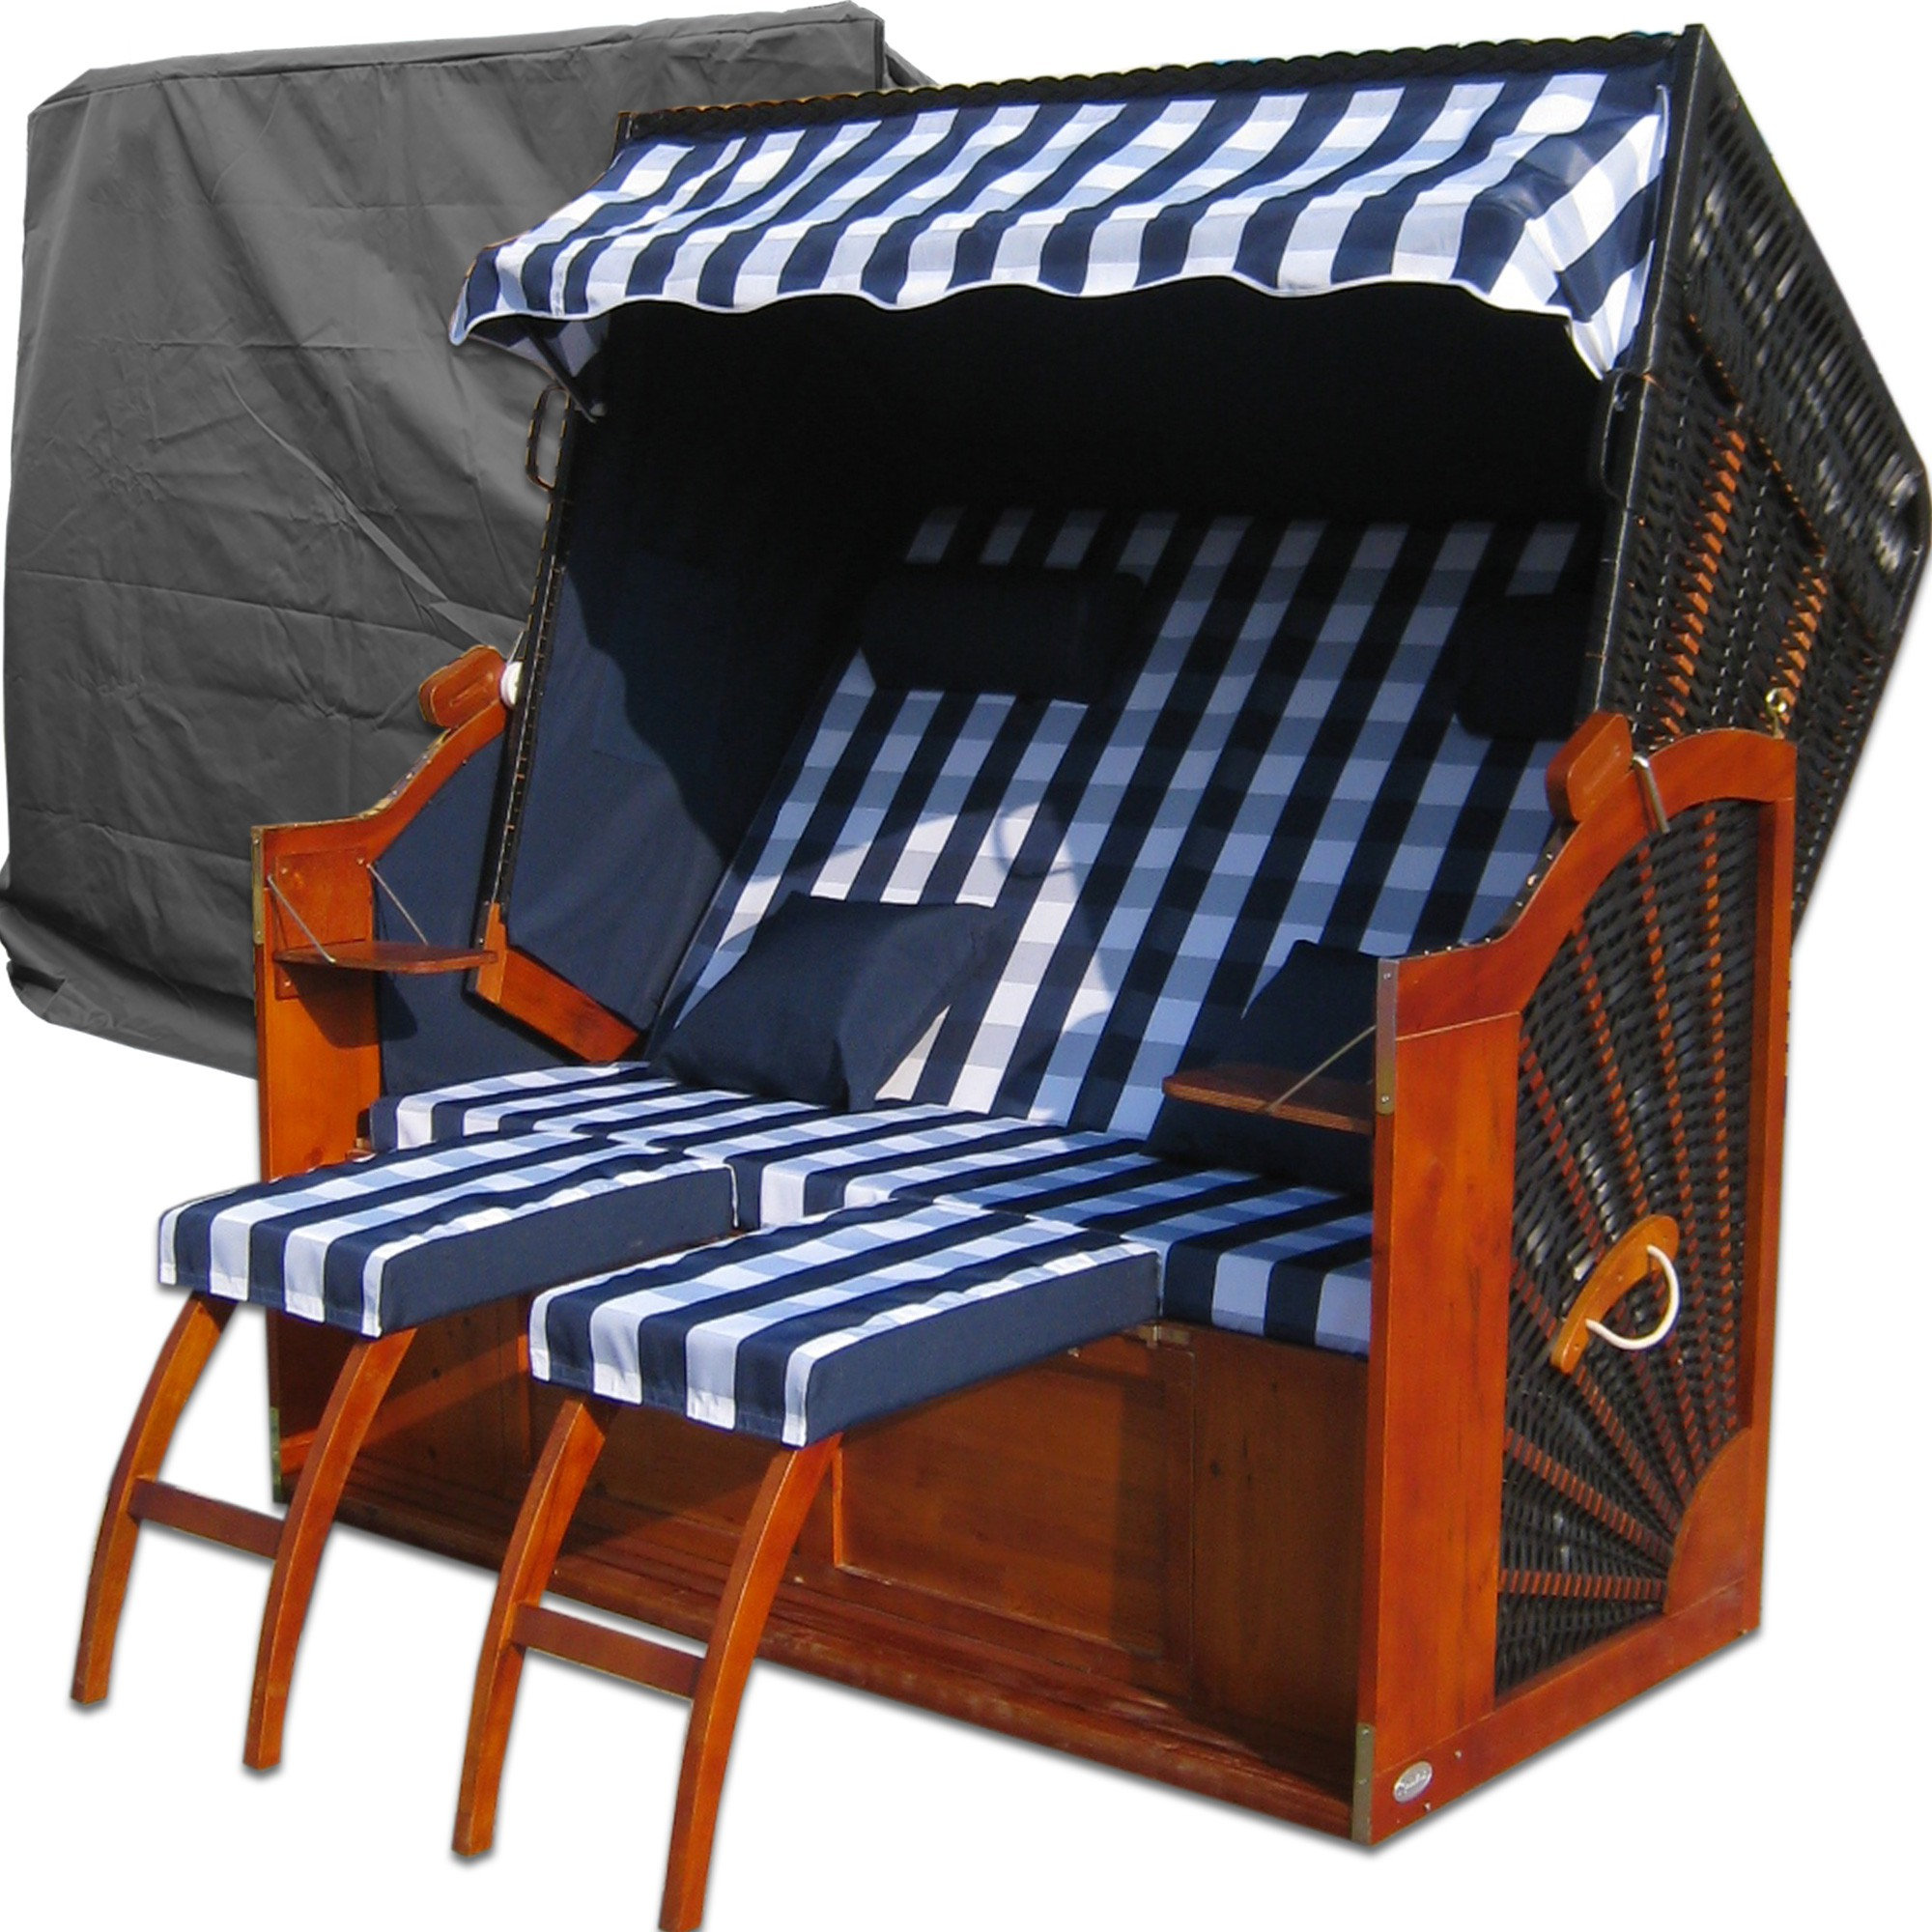 ostsee strandkorb kaufen xxl strandkorb g nstig. Black Bedroom Furniture Sets. Home Design Ideas